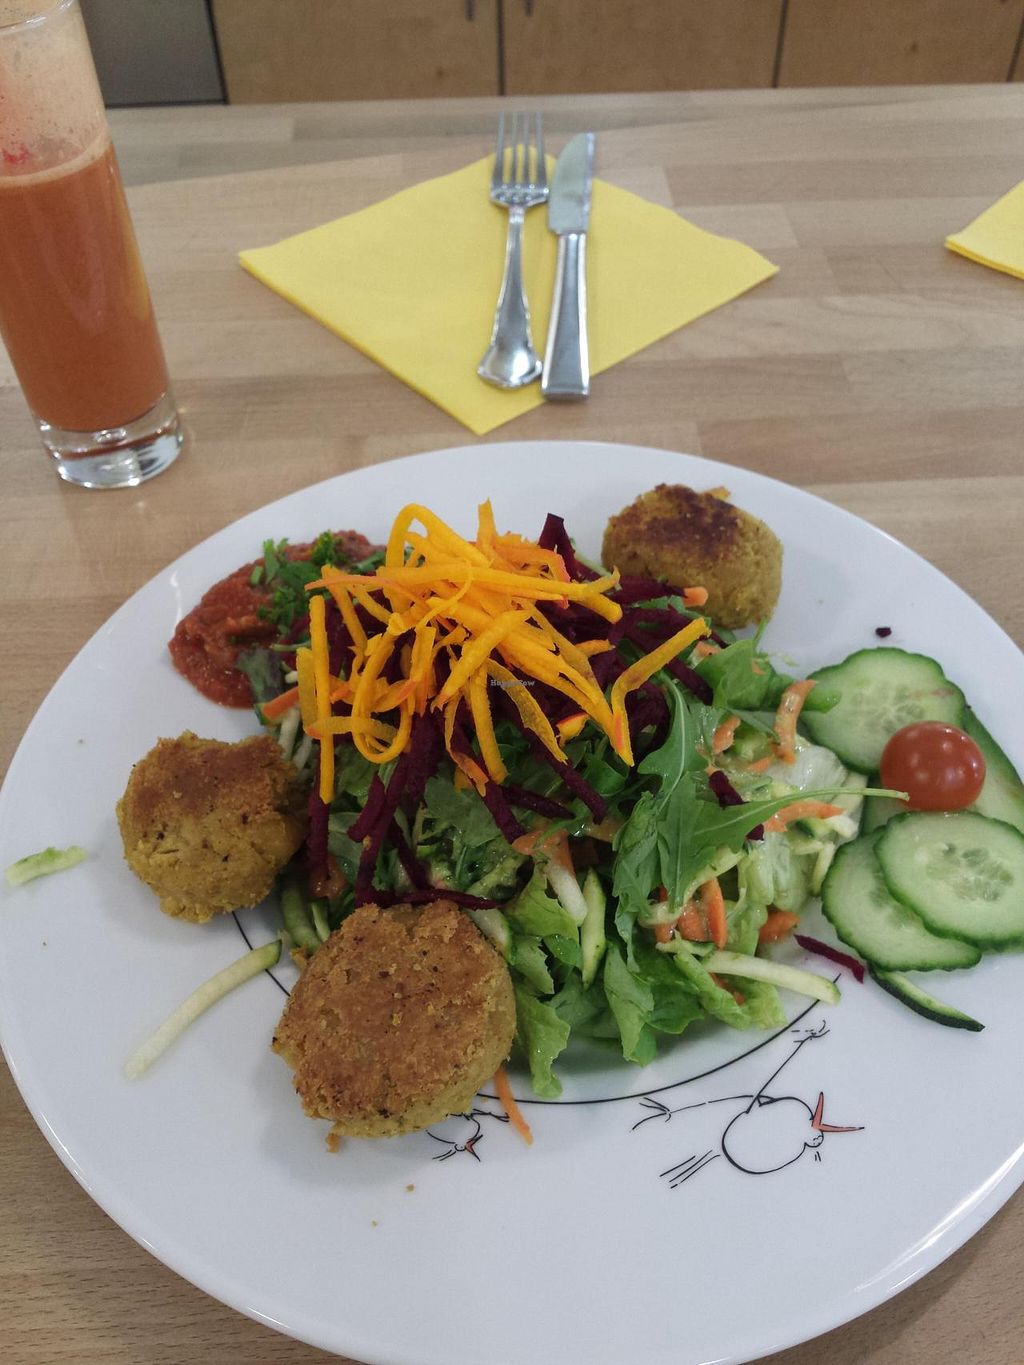 "Photo of Oh! Bio Mio  by <a href=""/members/profile/coi"">coi</a> <br/>Vegan falafel and salad <br/> April 26, 2015  - <a href='/contact/abuse/image/7540/100410'>Report</a>"